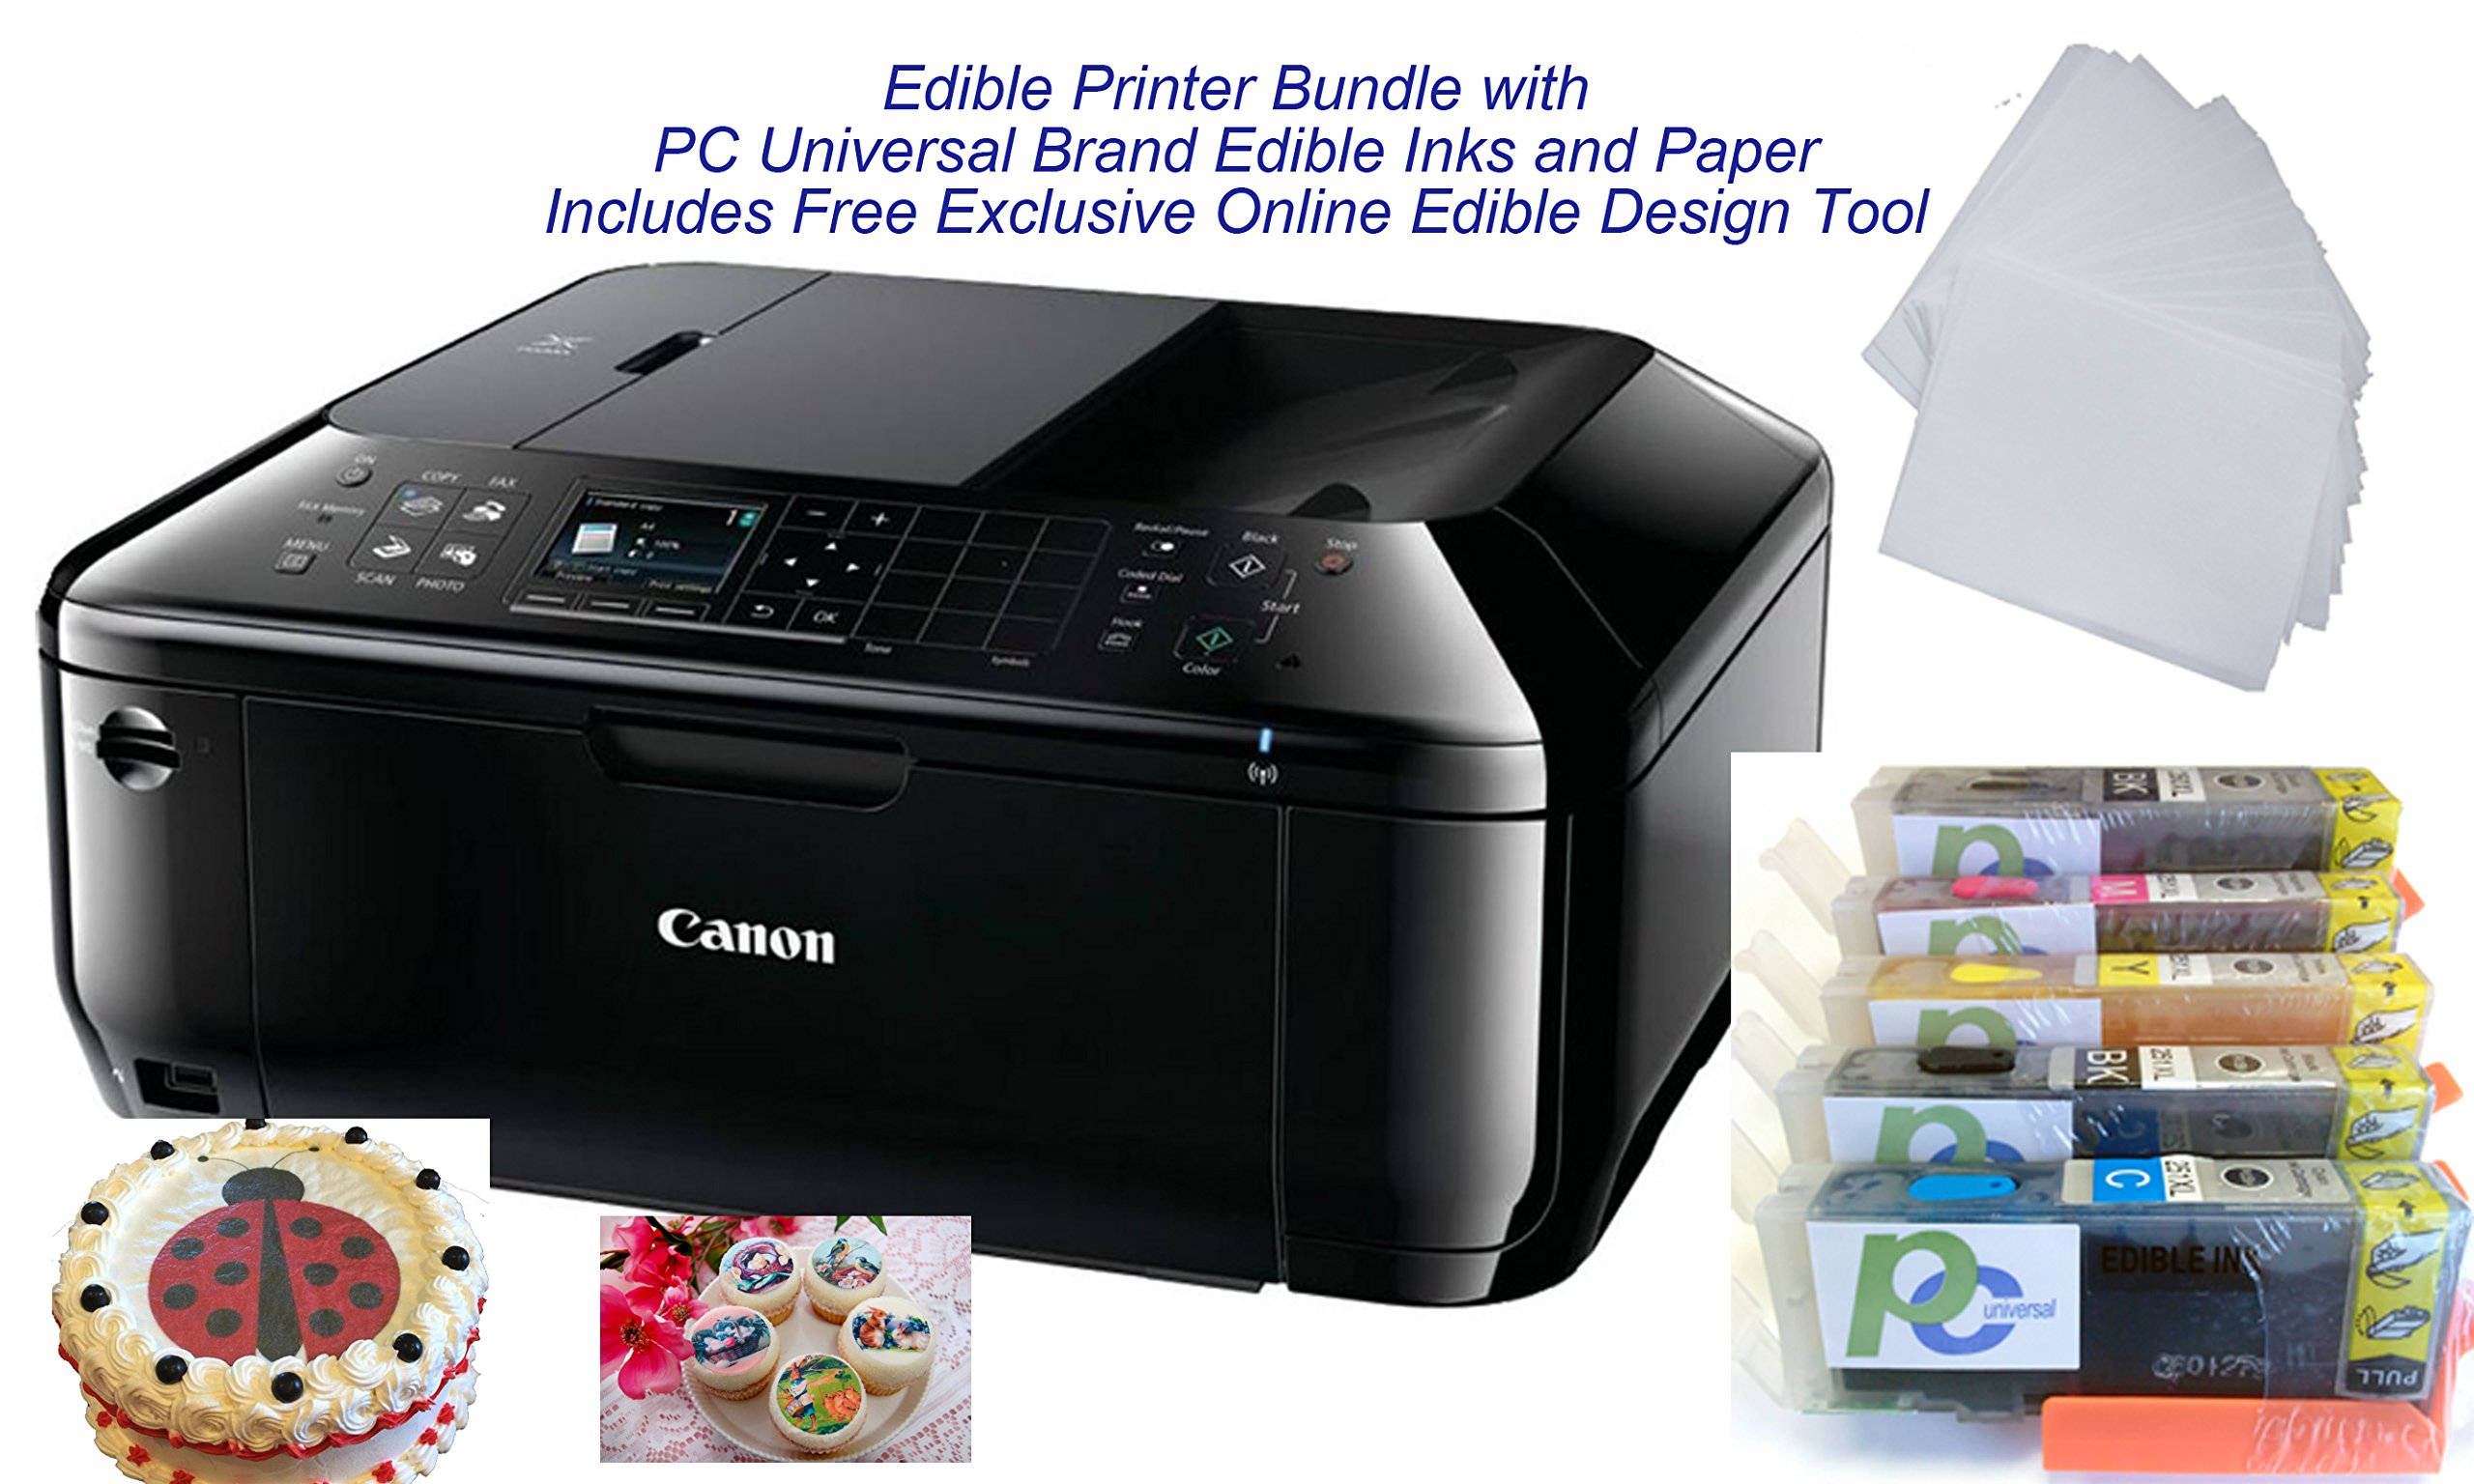 Edible Printer Bundle- Brand New Canon All-in-One Printer with Edible Paper and Inks by PC Universal by PC Universal